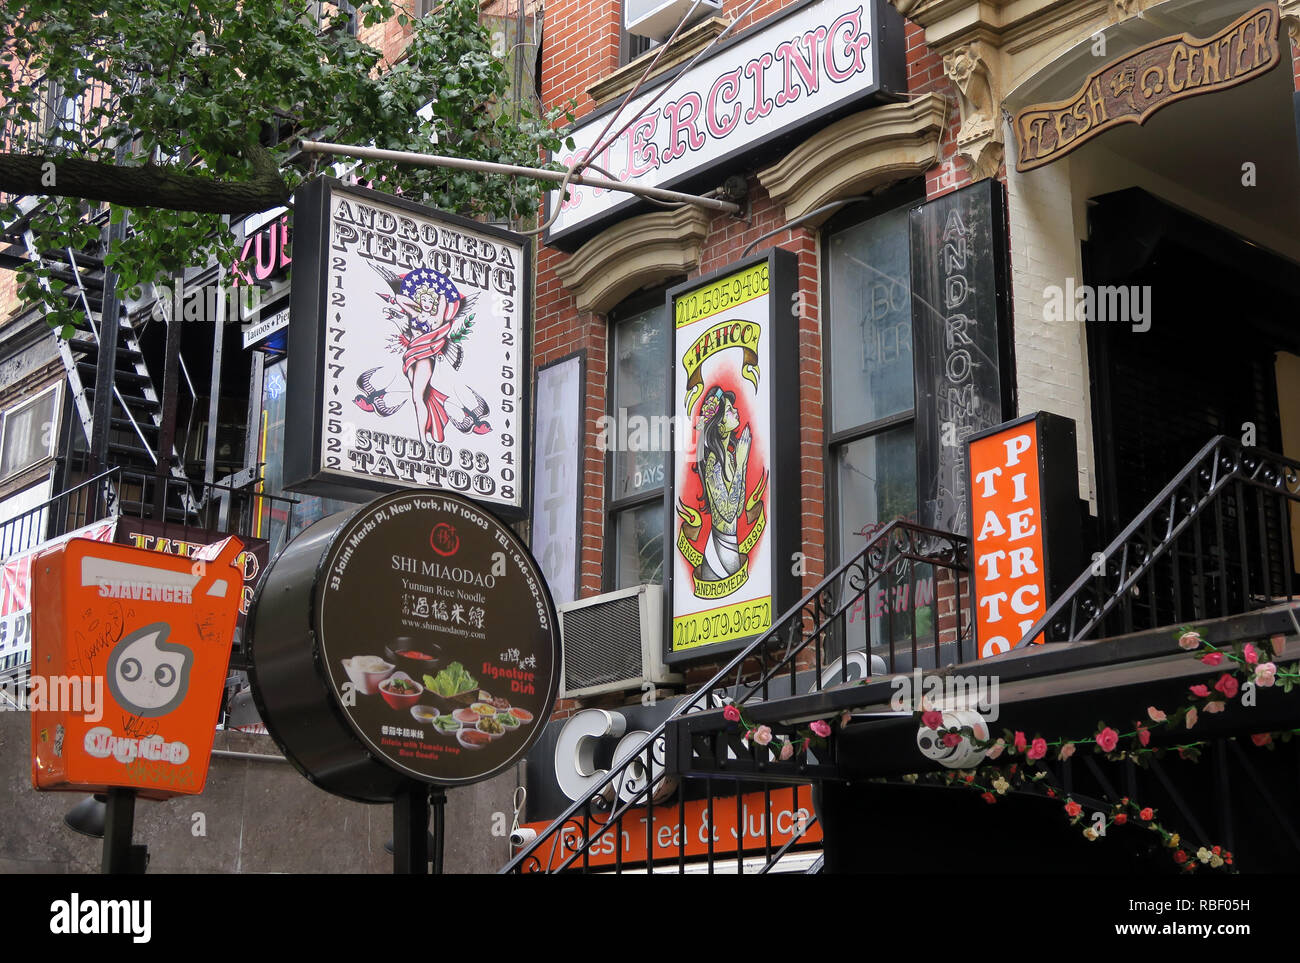 Saint Marks Place, Piercing, Flesh Center, tattoo, east Village, Manhattan, New York, NY, USA - Stock Image